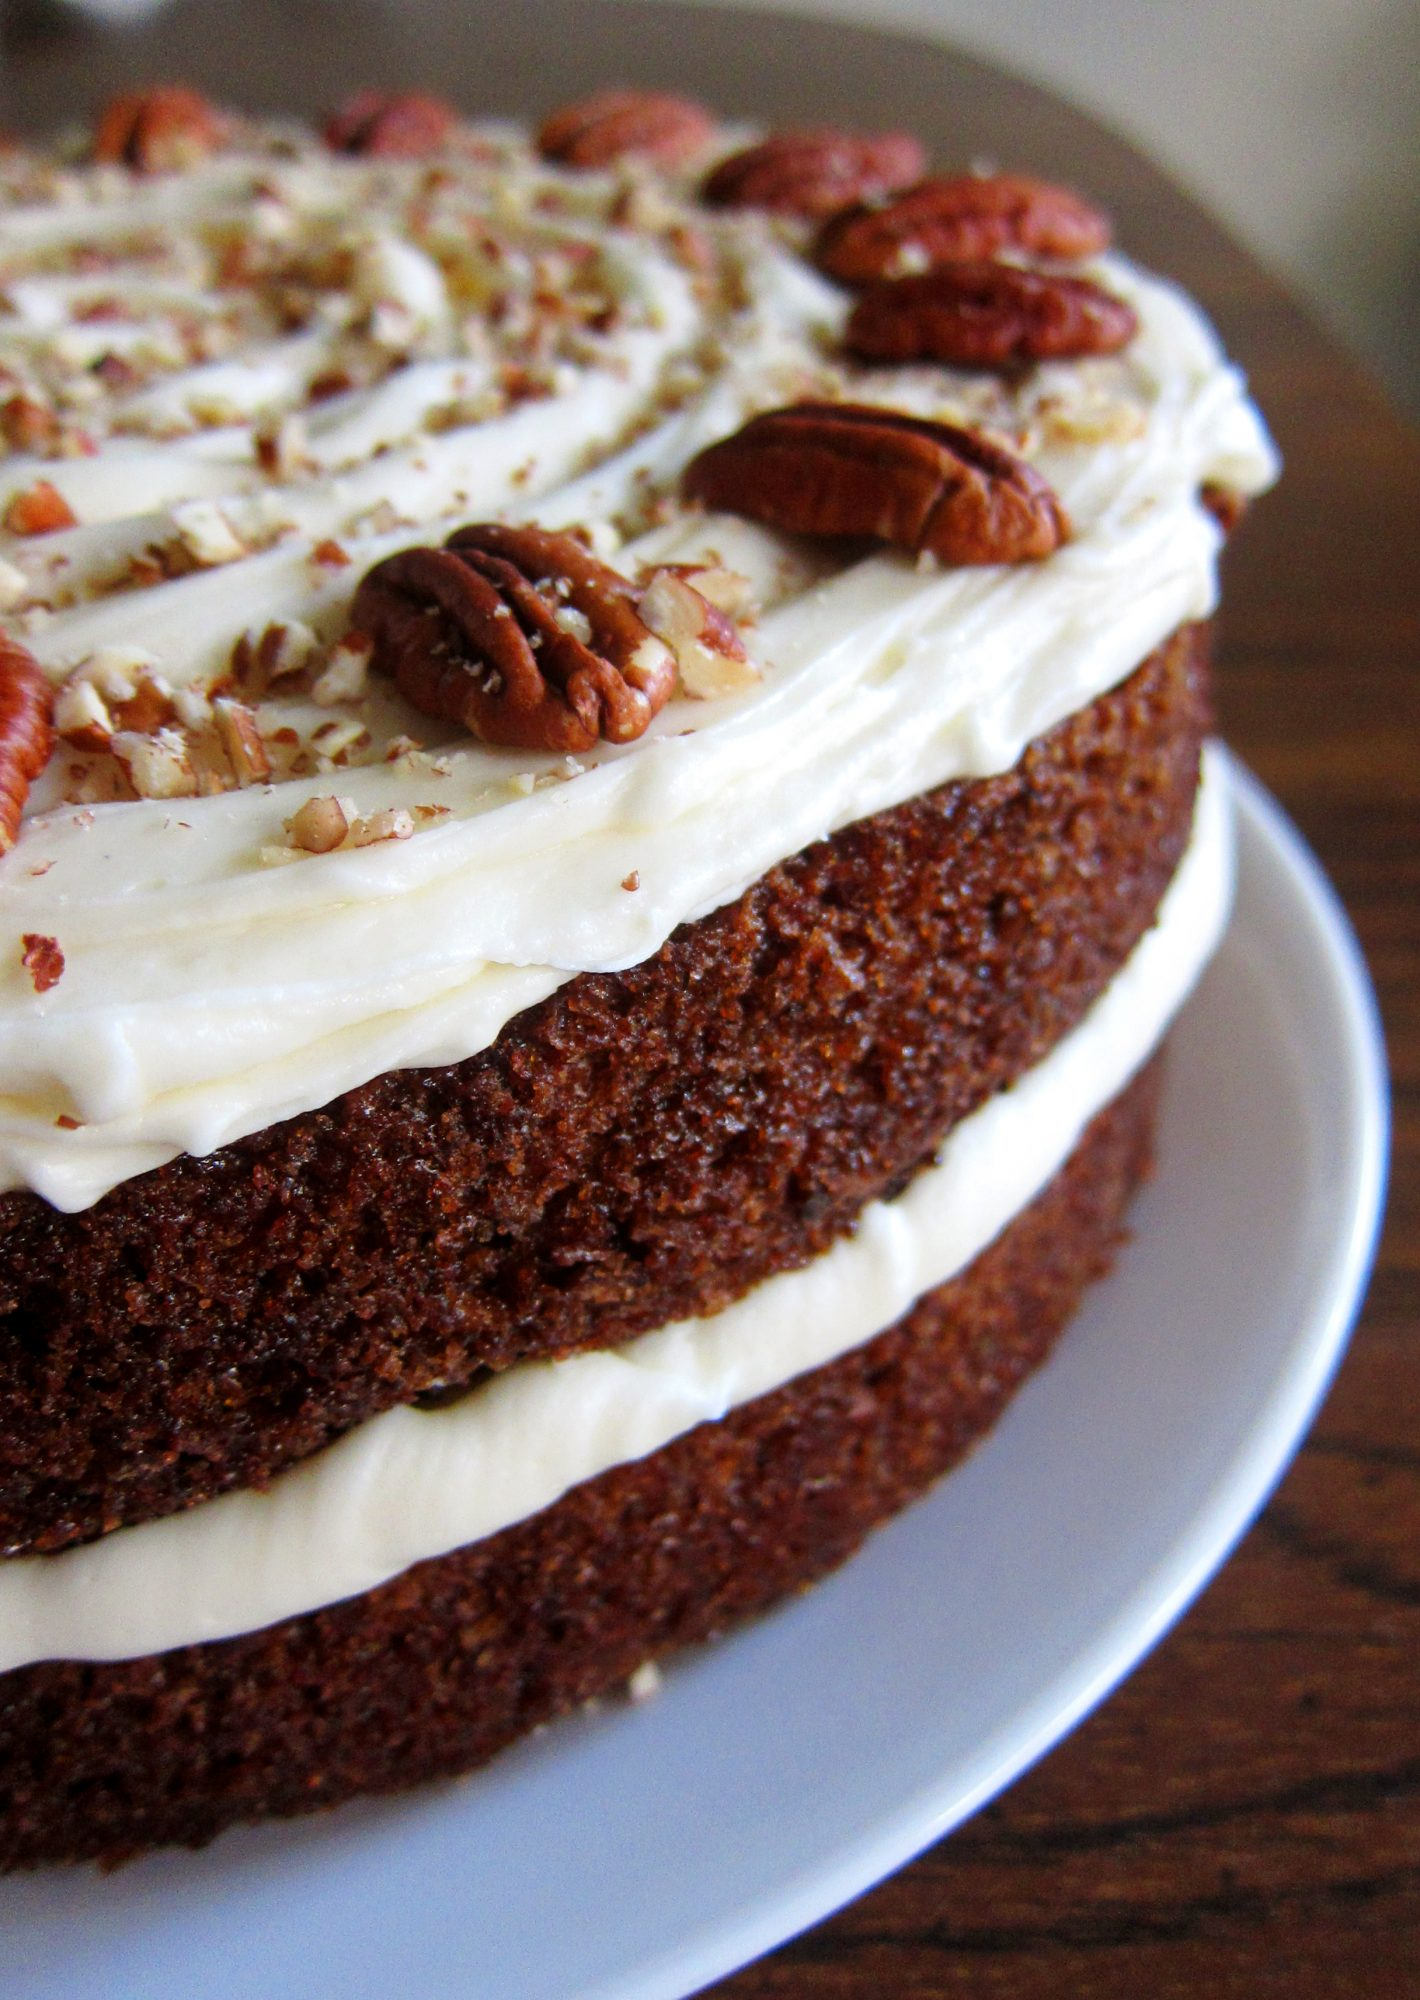 side view of a cake with frosting between two layers and on top, garnished with pecan halves and chopped pecans